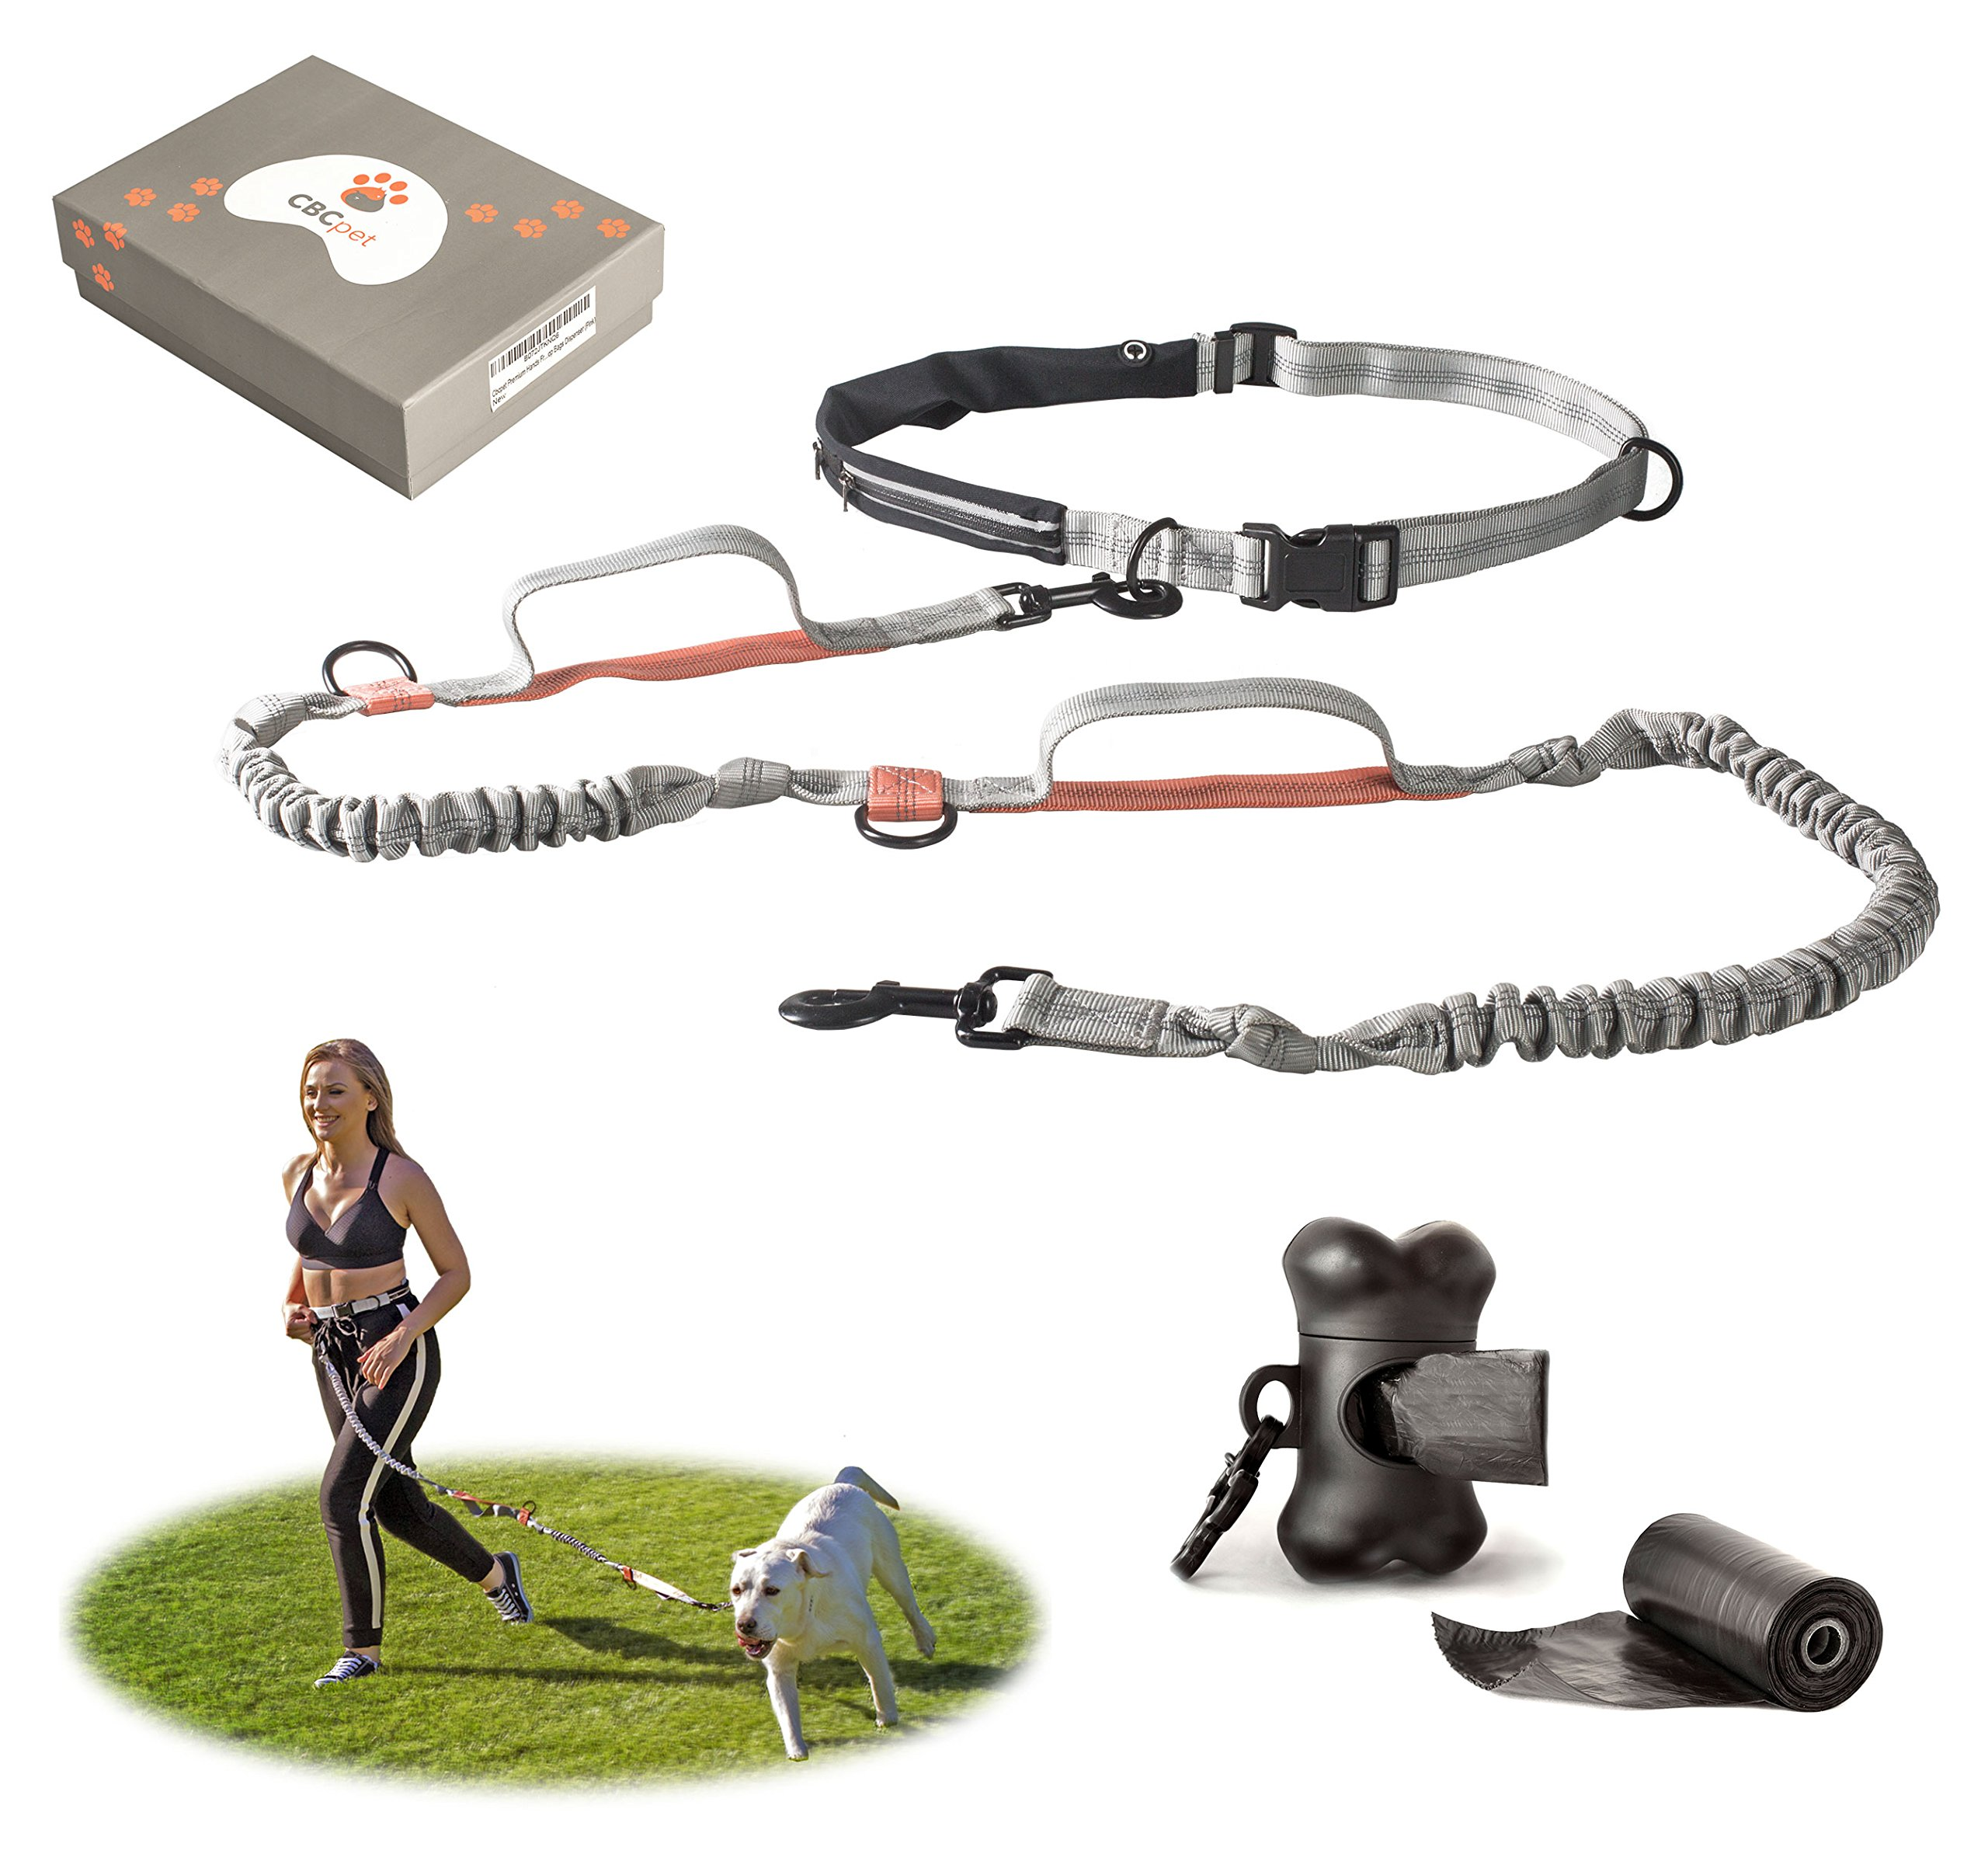 CBCpet Hands Free Dog Leash for Running/Walking/ Hiking with Strong Dual Handle Bungees for Dogs up to 150 lb. with Double Leash Feature, Premium Adjustable Waist Belt & Poop Bags Dispenser